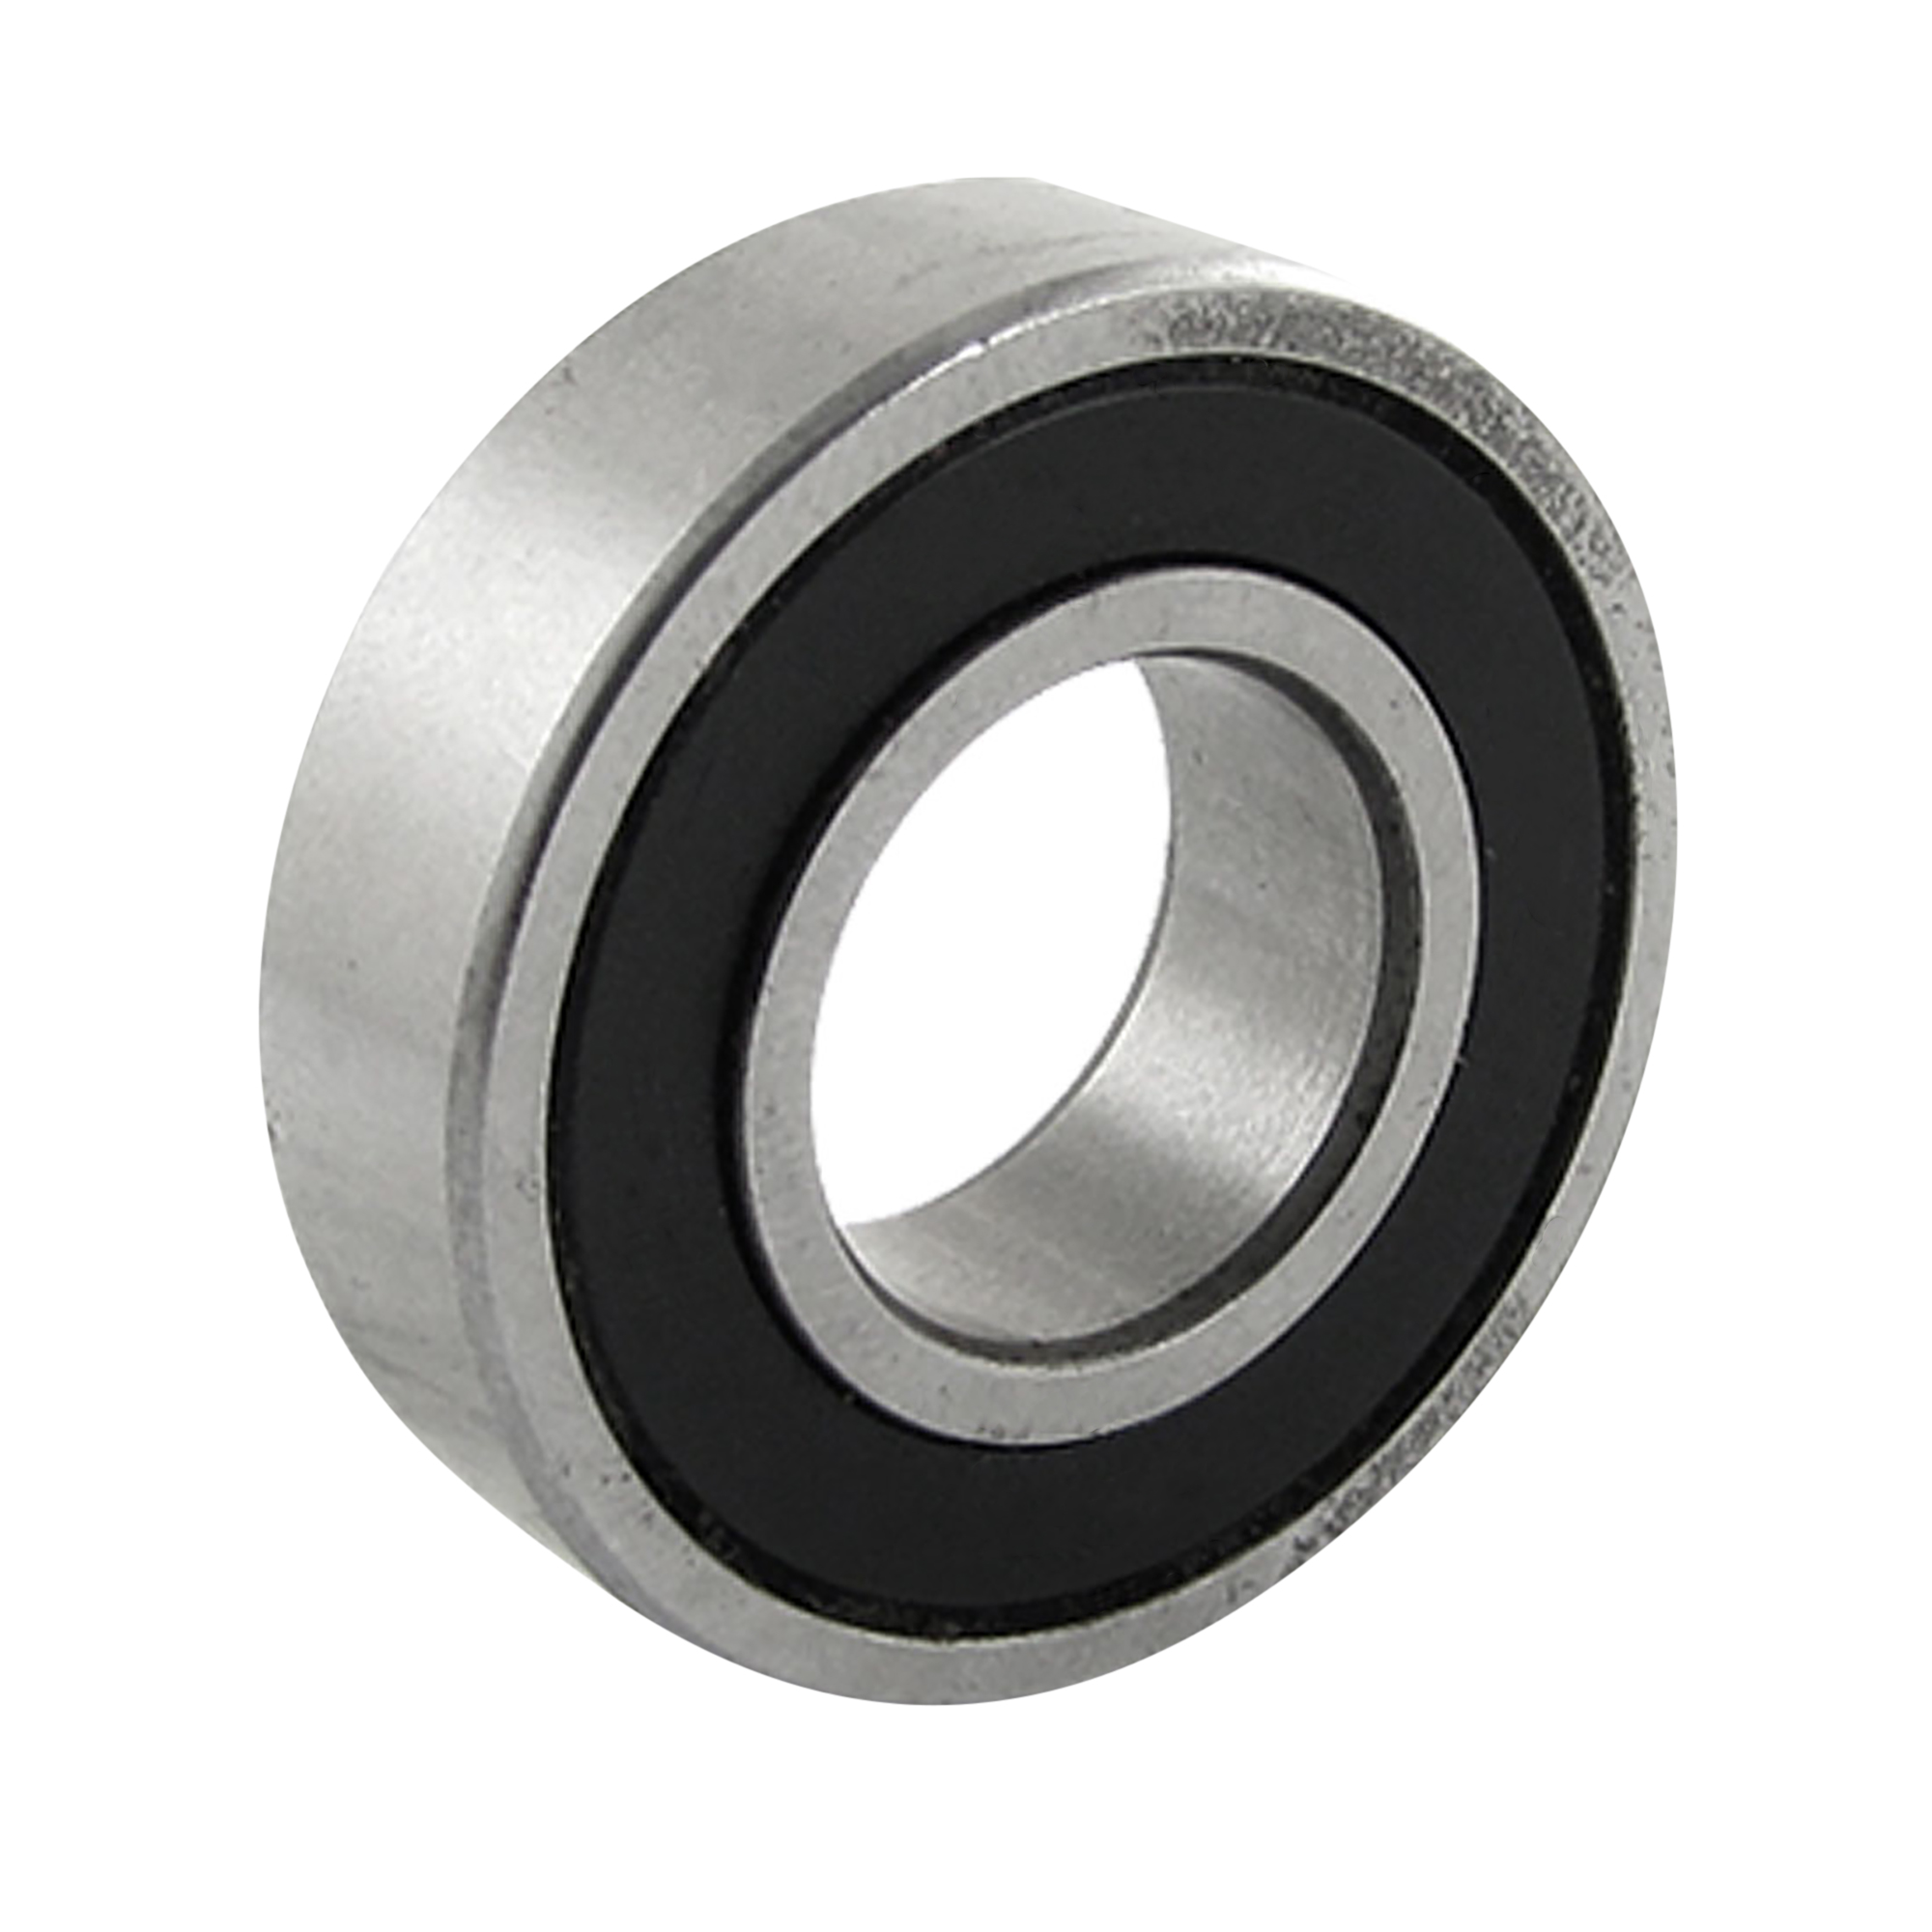 15mm x 32mm x 9mm Double Sealed Ball Wheel Bearings